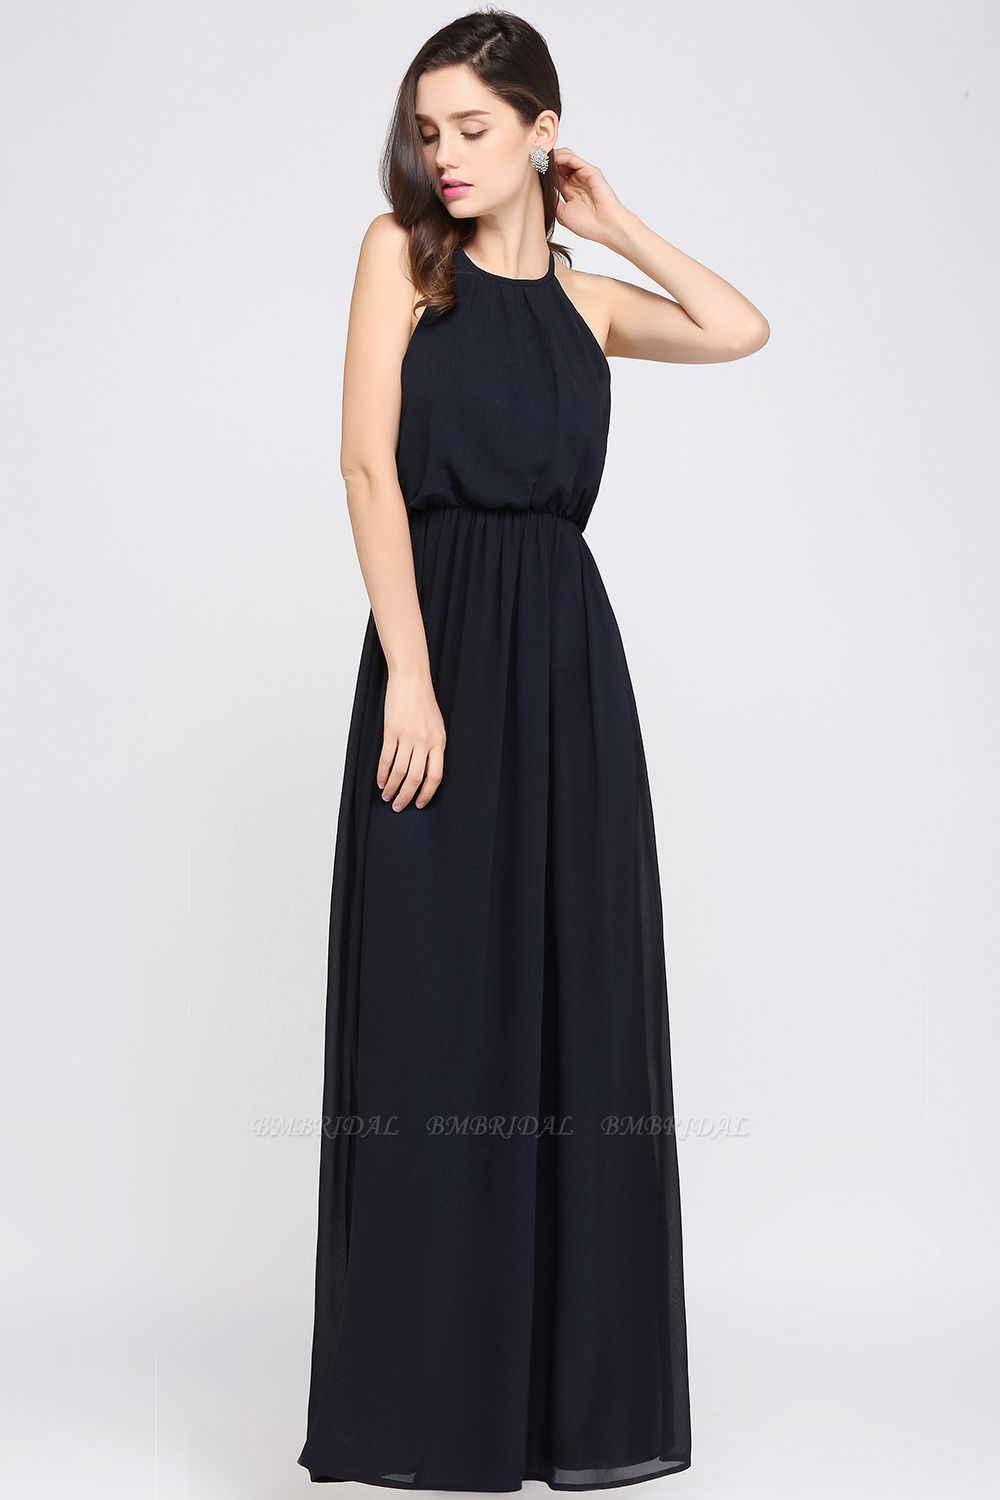 Modest High-Neck Halter Chiffon Junior Bridesmaid Dress Cheap